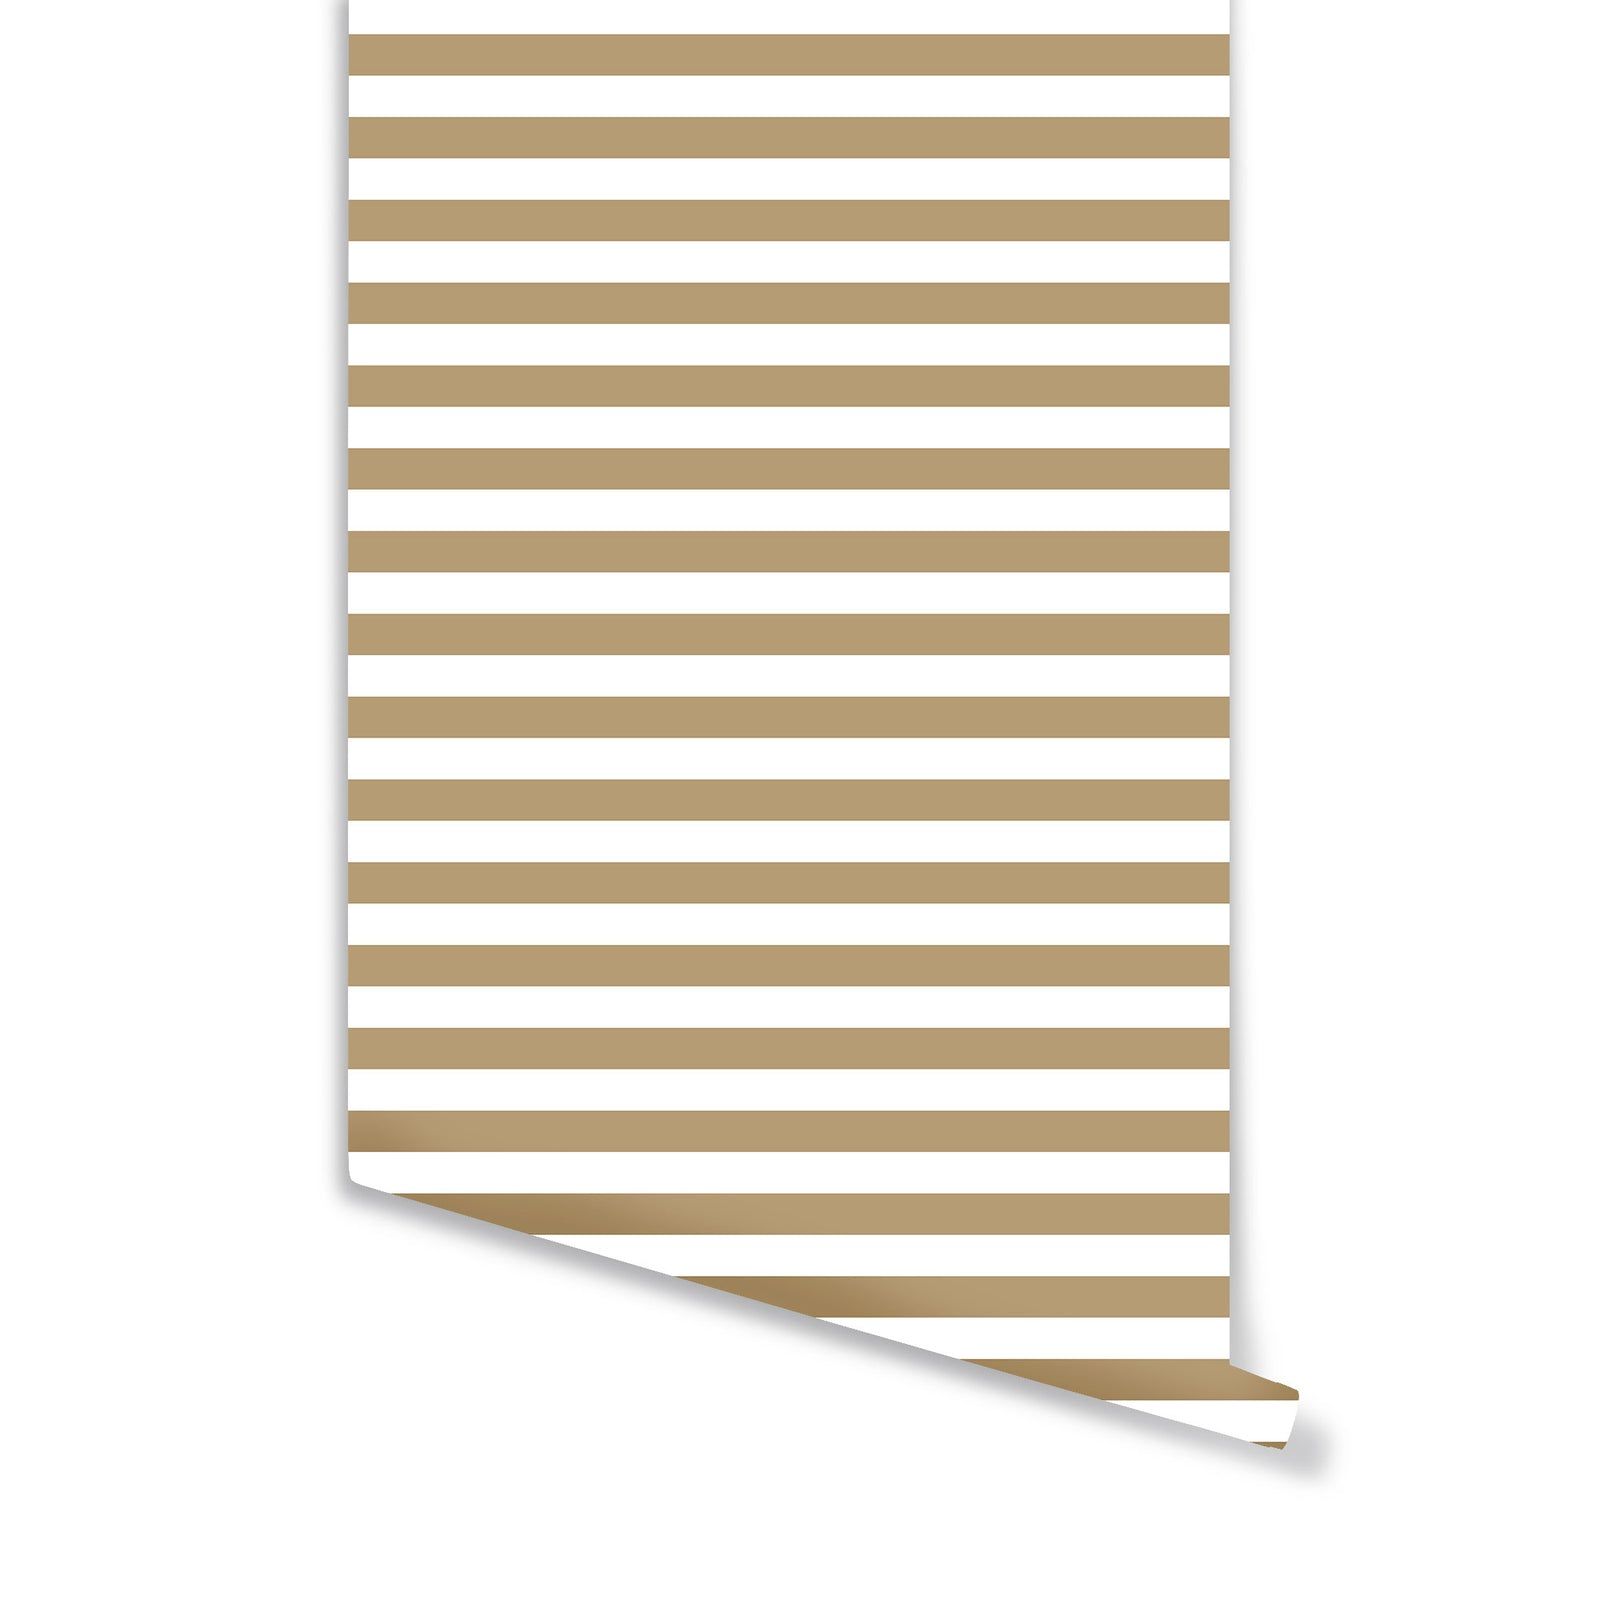 Coastal Stripe Wallpaper in Camel